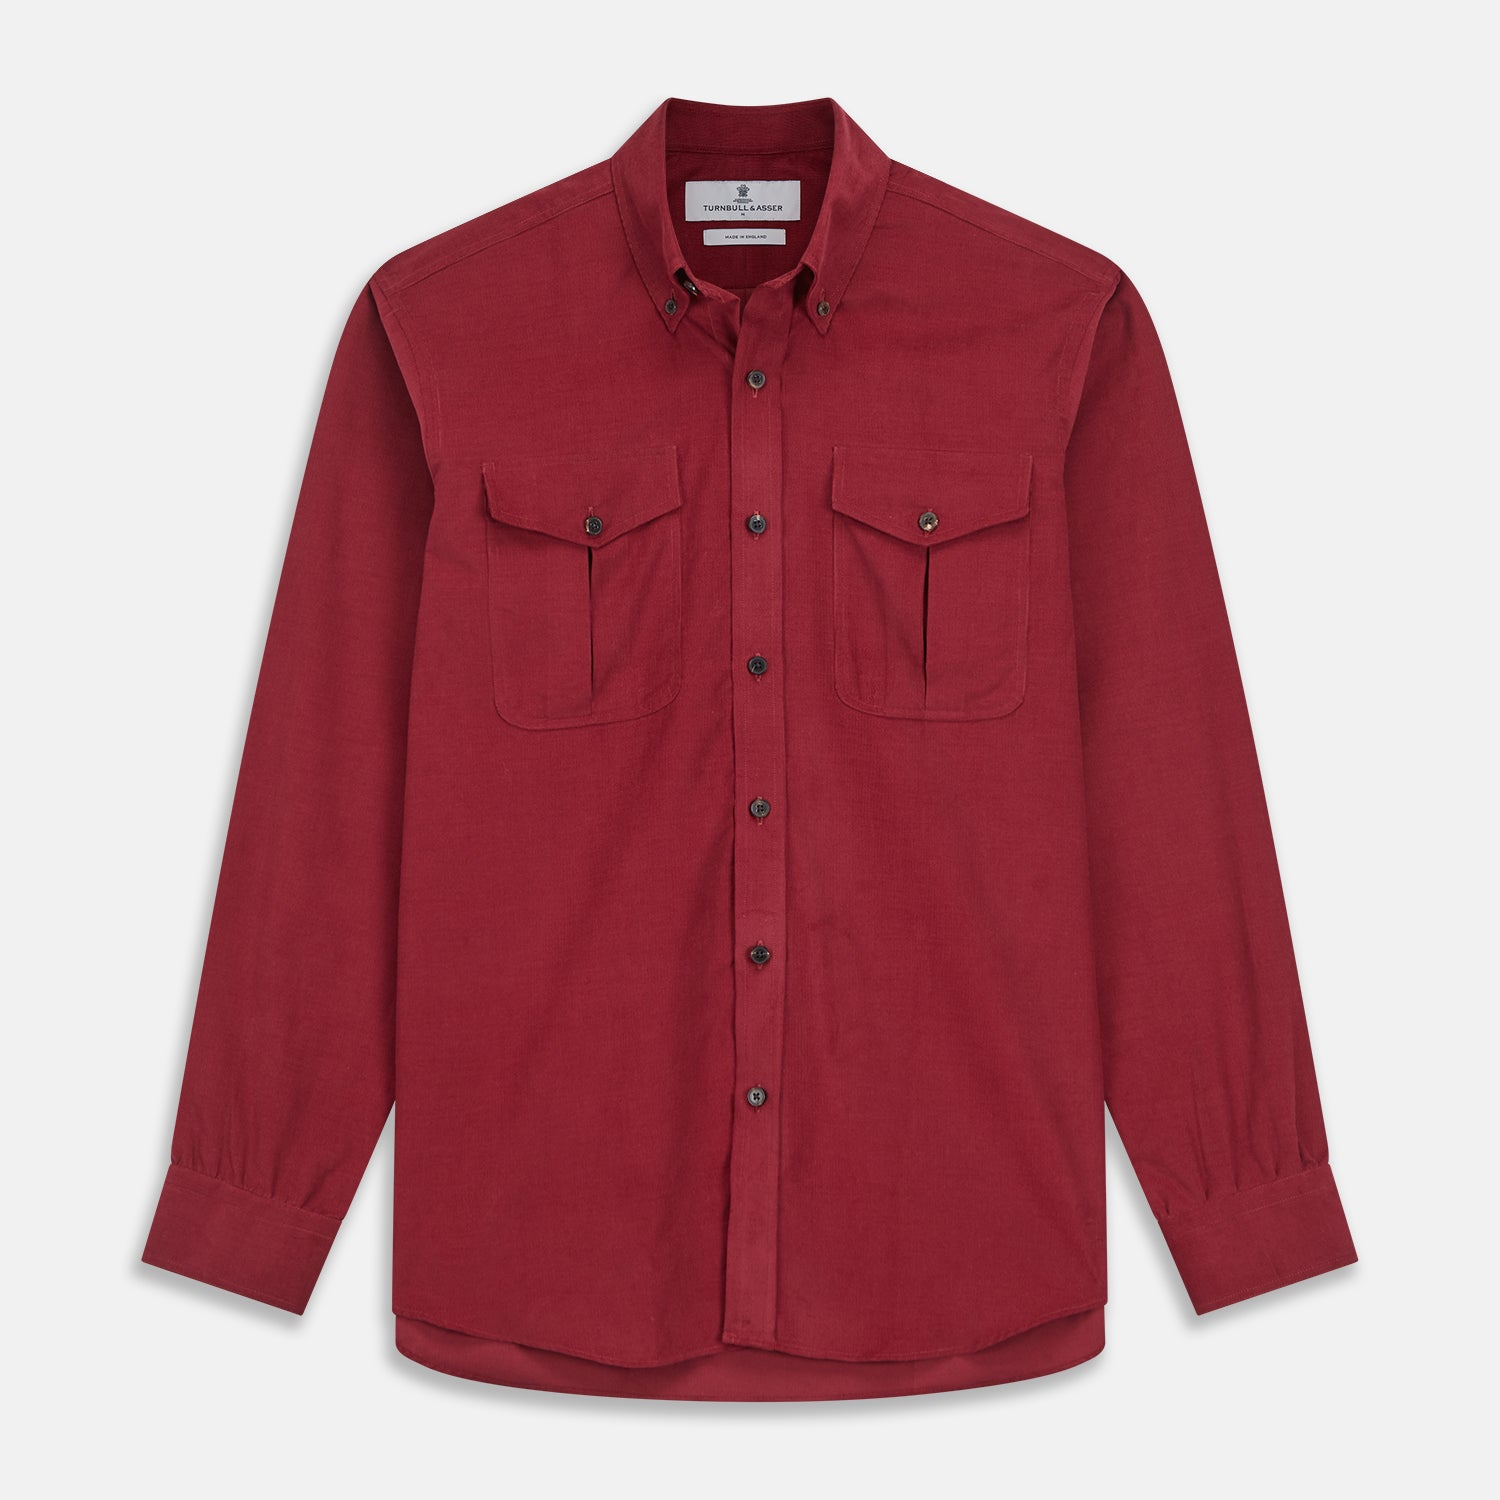 Burgundy Corduroy Officer Weekend Fit Shirt with Dorset Collar and One-Button Cuffs